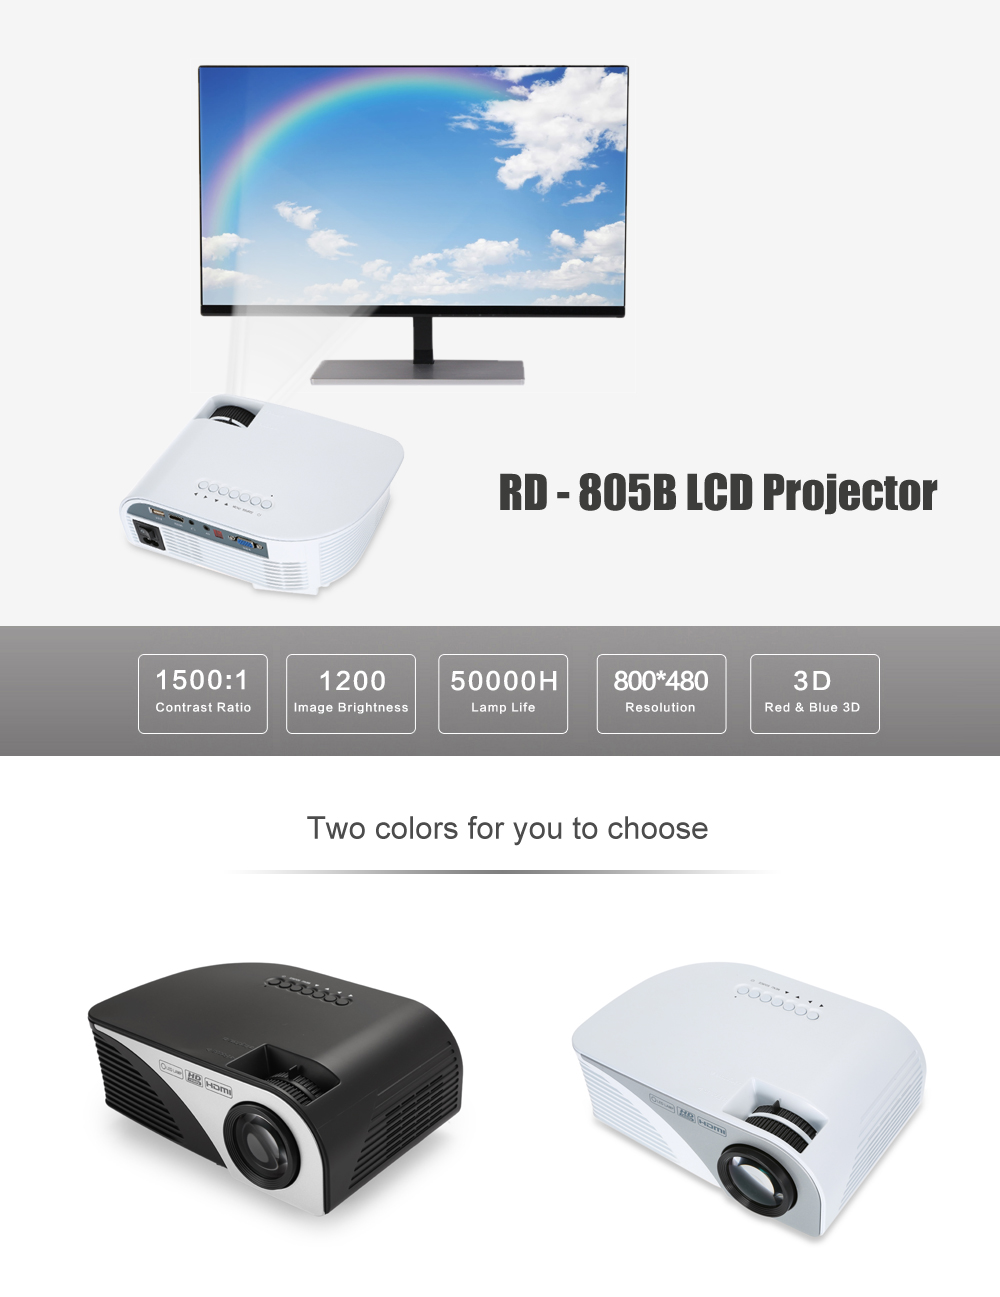 RD - 805B LCD Projector 1200Lm 800 x 480 Pixels 1080P Home Theater